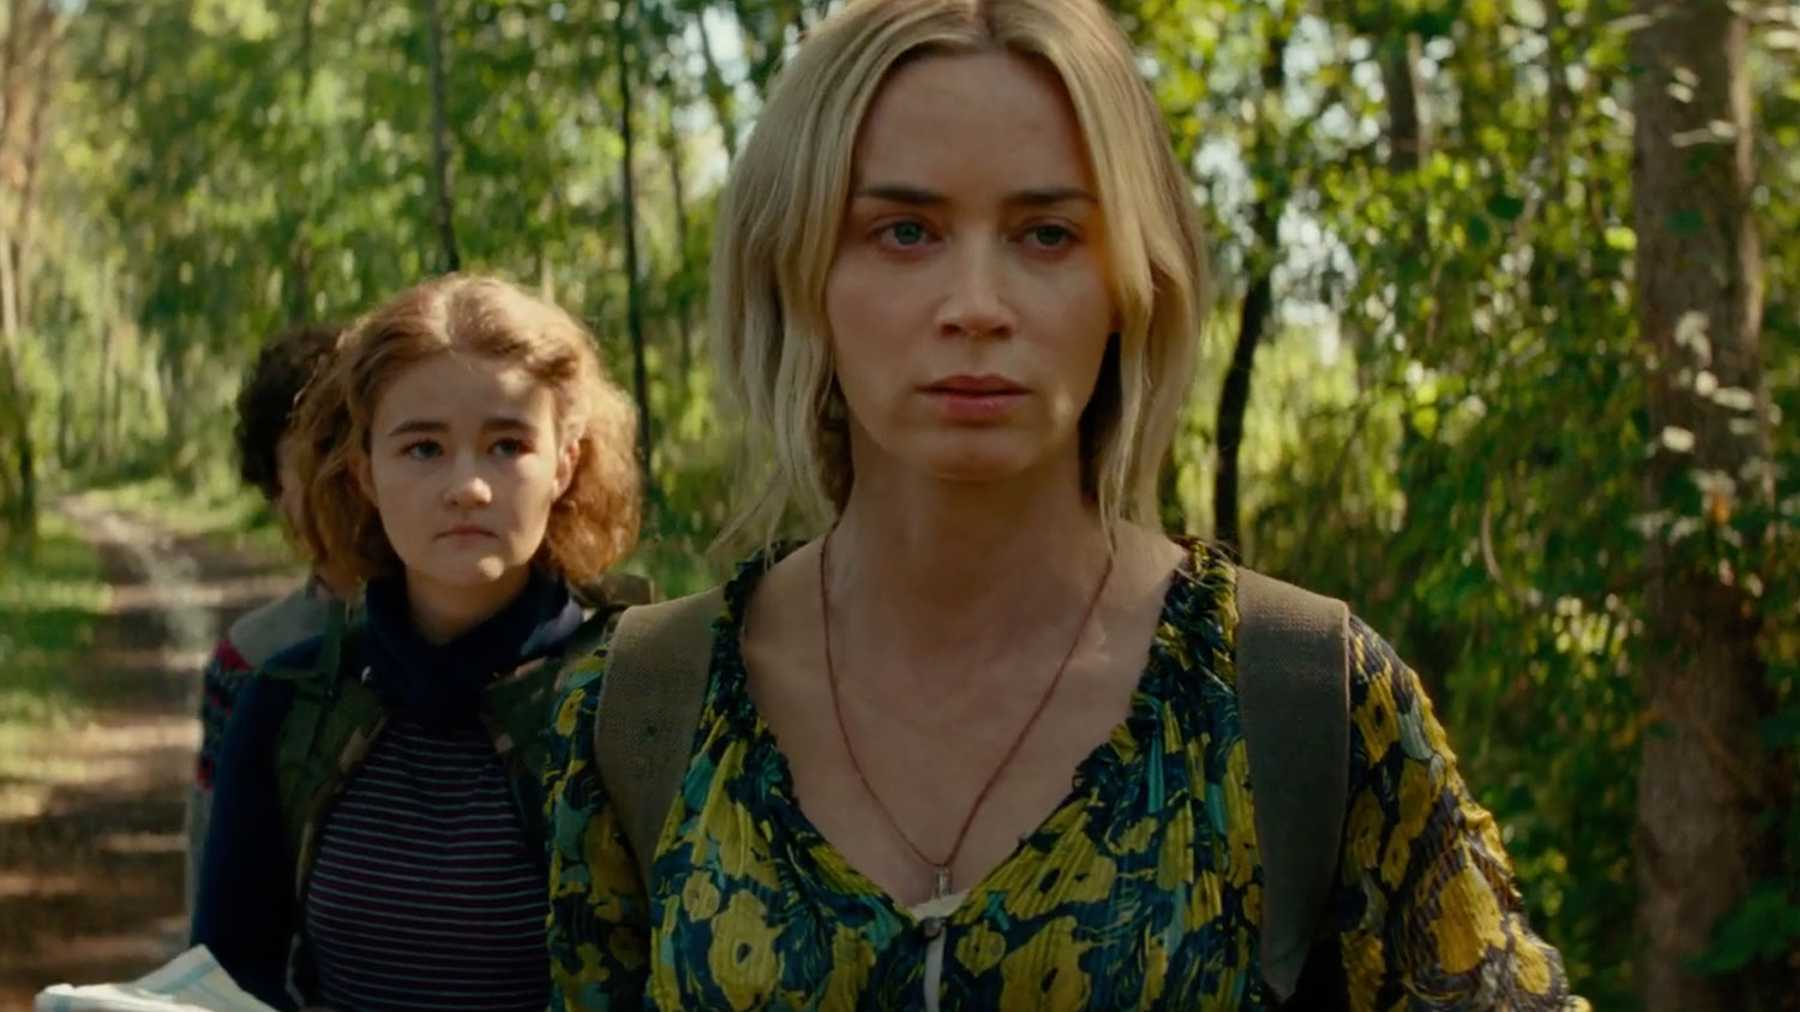 'A Quiet Place Part II' Adds More To It's Desolate World While Not Forgetting What Made the Original Great